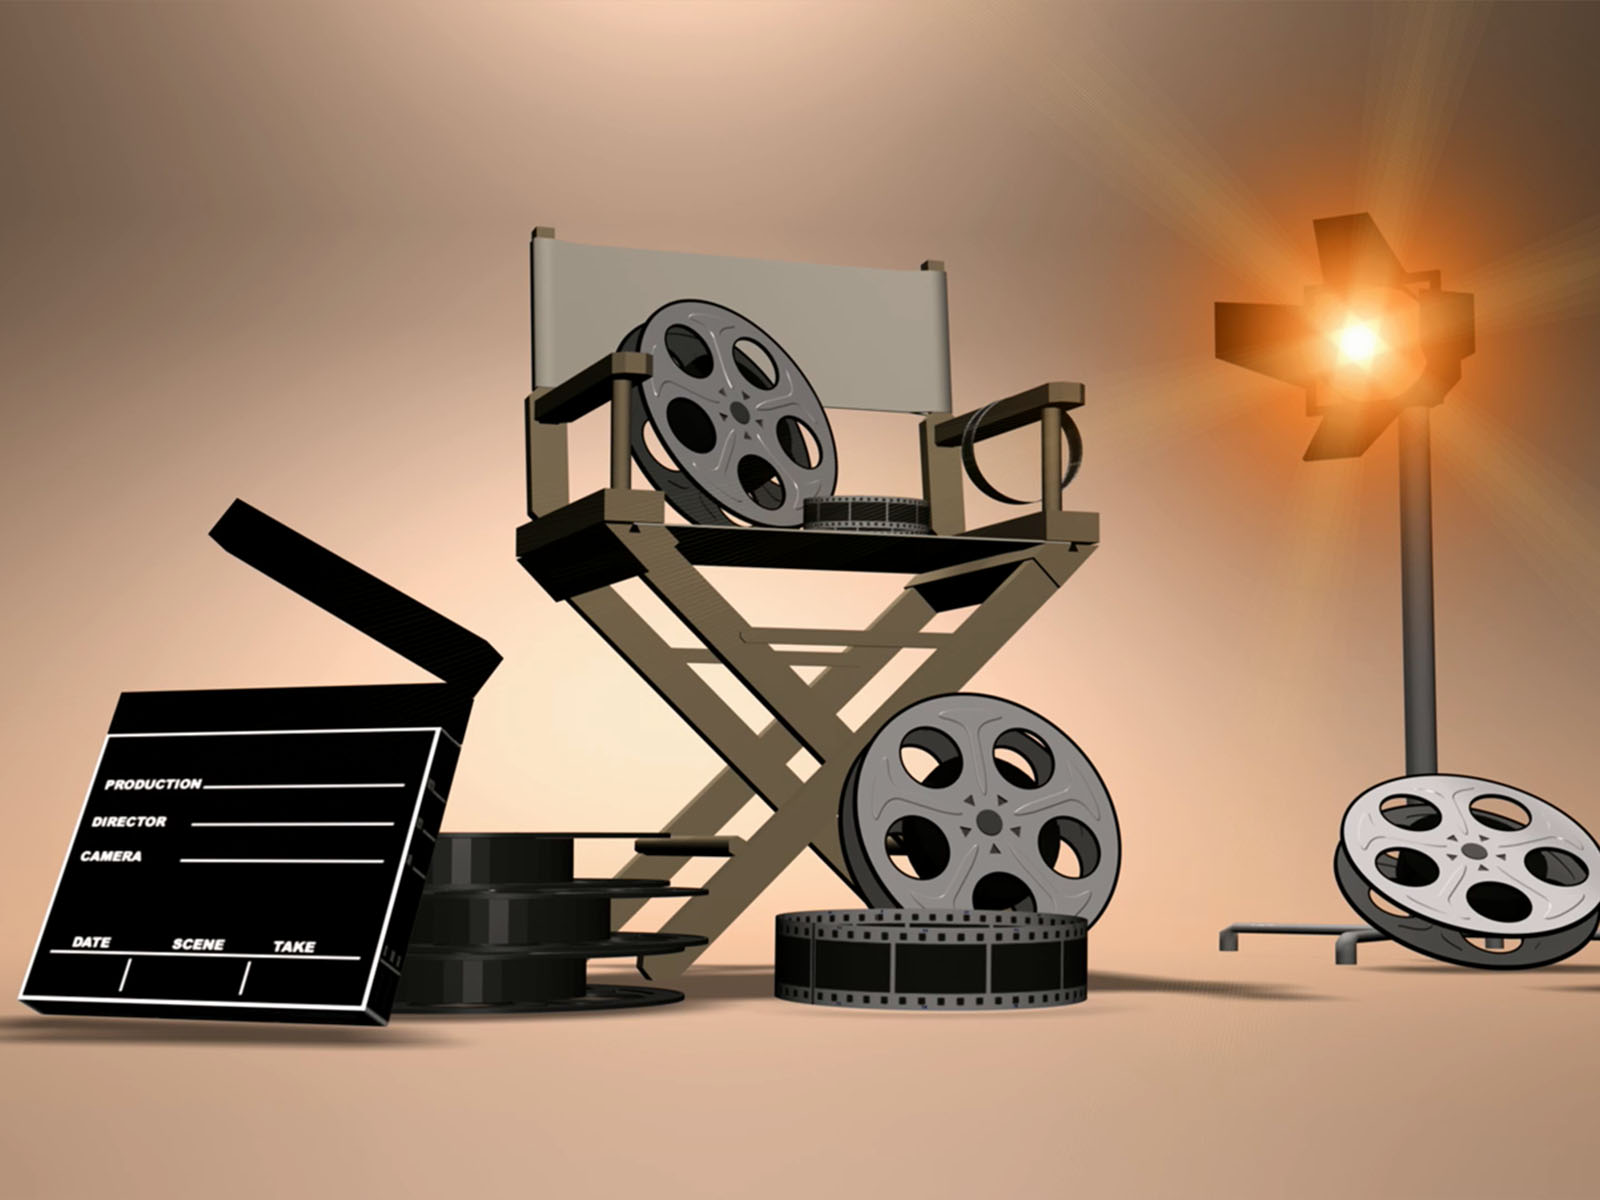 Film Set Equipment Powerpoint Background